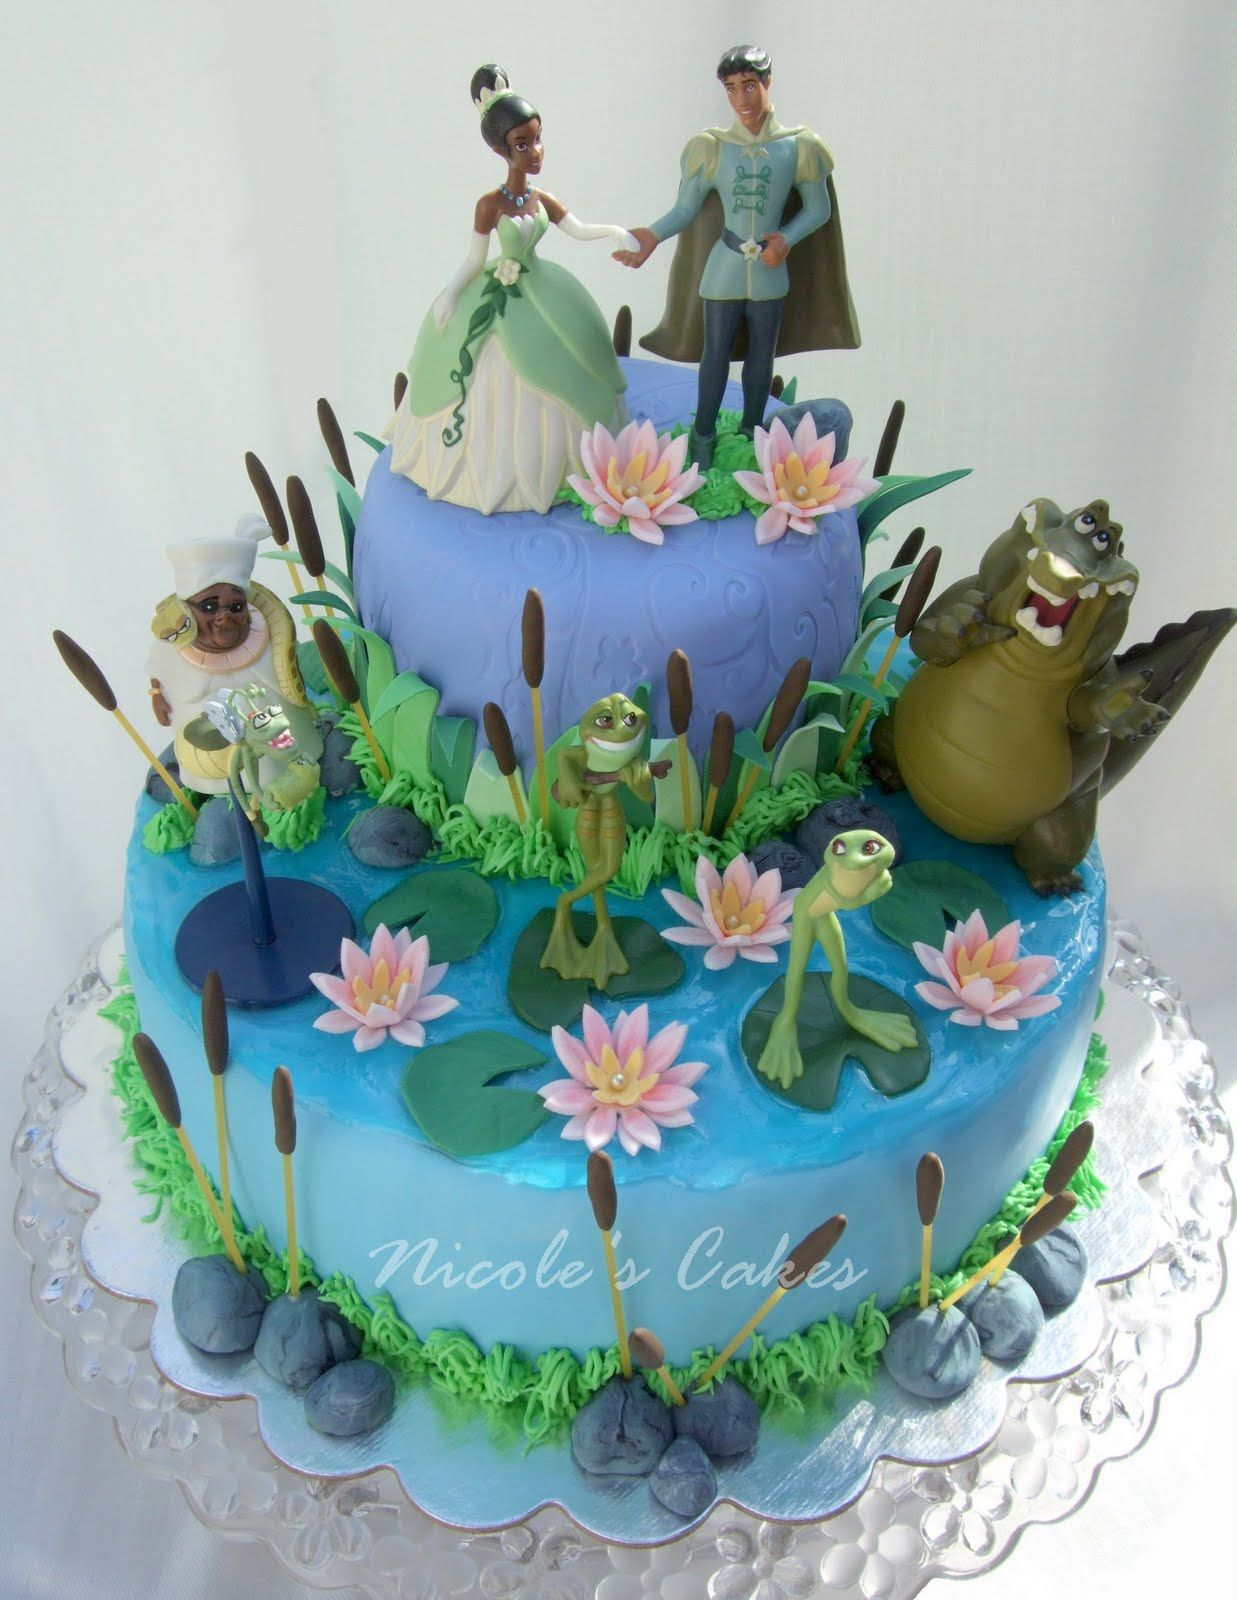 Princess And The Frog Bedroom Decor The Princess And The Frog Figure Play Set 7 Pc Birthday Party